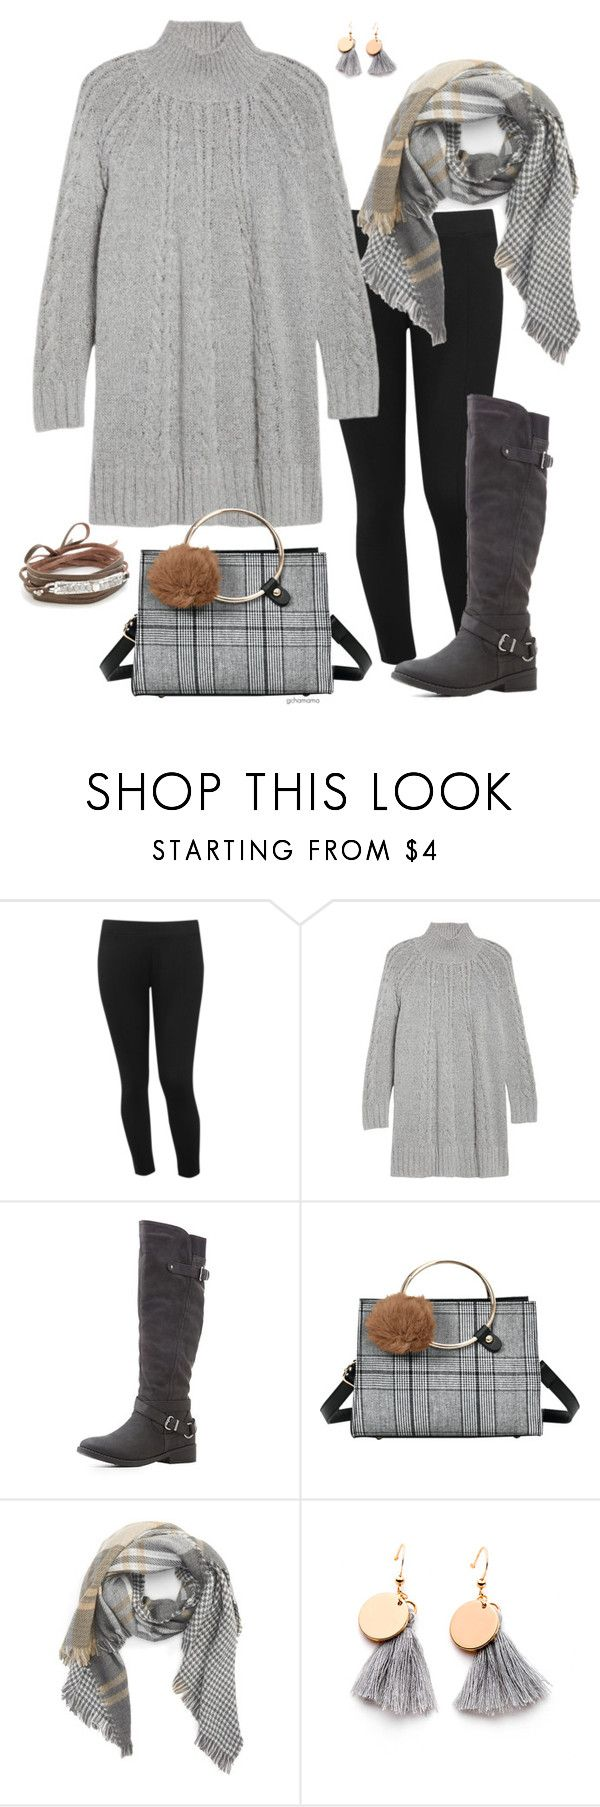 """""""Winter sky- plus size"""" by gchamama ❤ liked on Polyvore featuring M&Co, Caslon, Qupid, BP. and Chan Luu"""